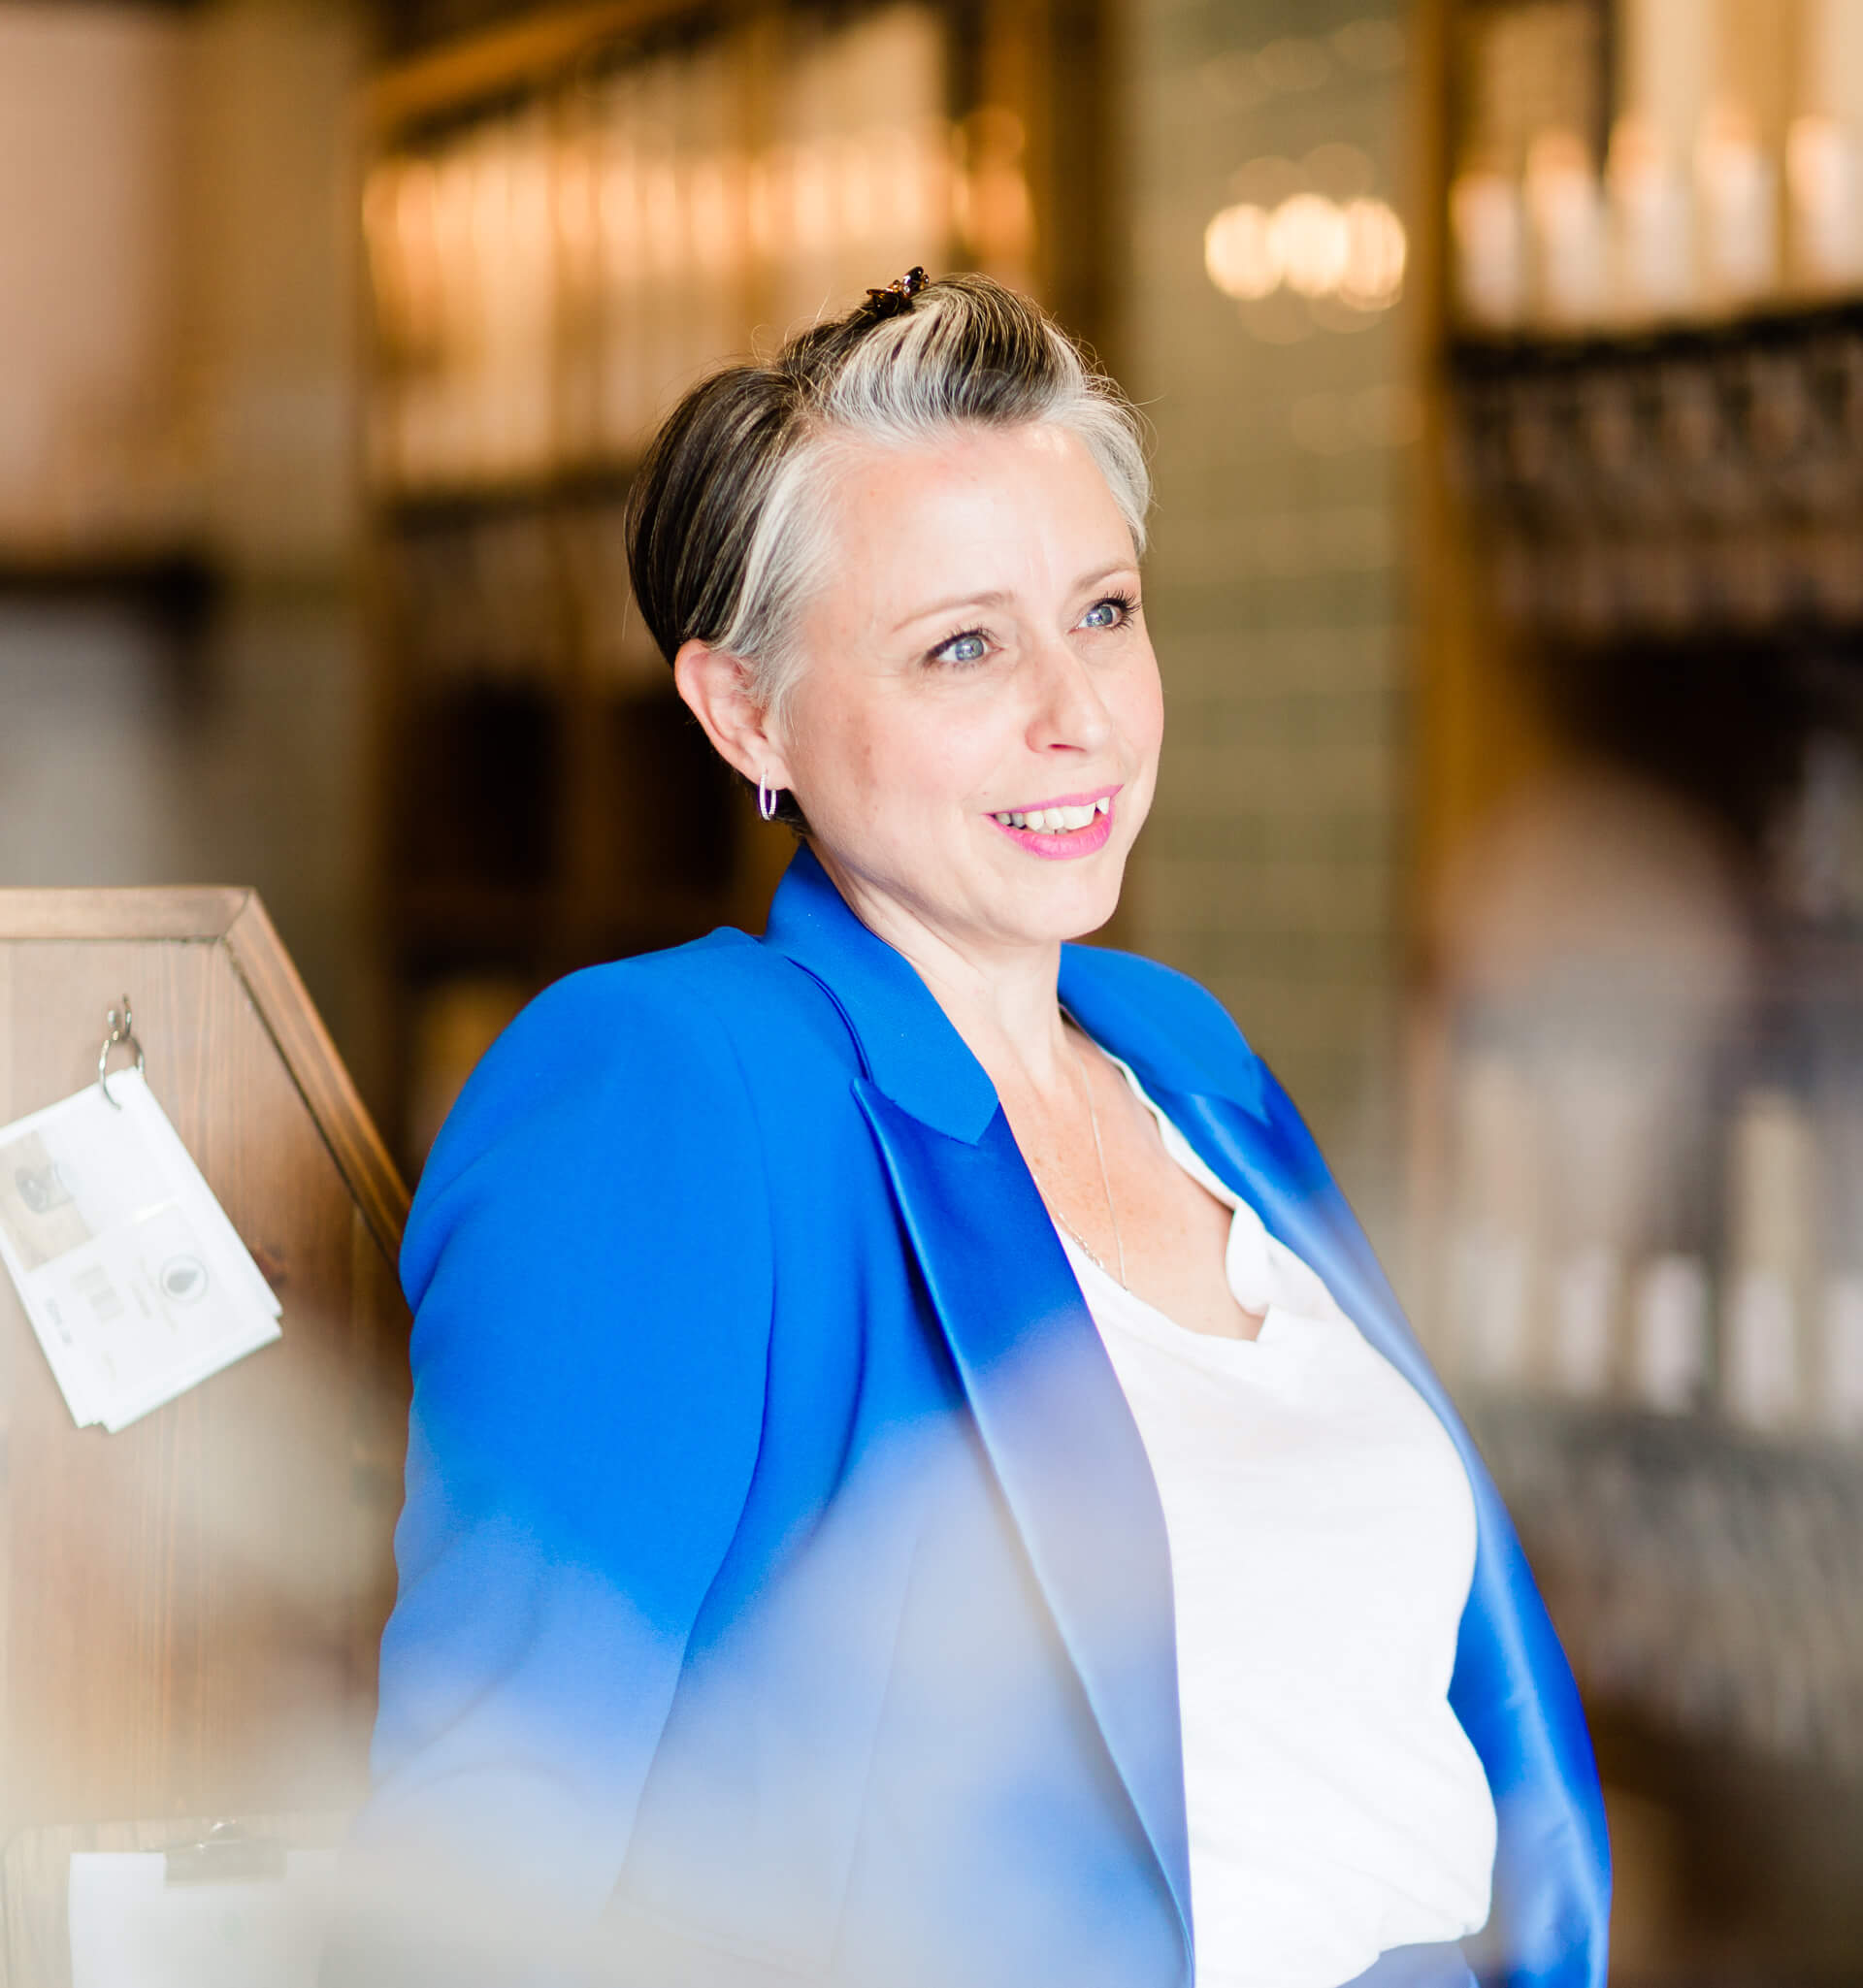 founder of Wear em out Lauren Derrett in bright blue suit captured by Chelmsford headshot photographer Kika Mitchell Photography